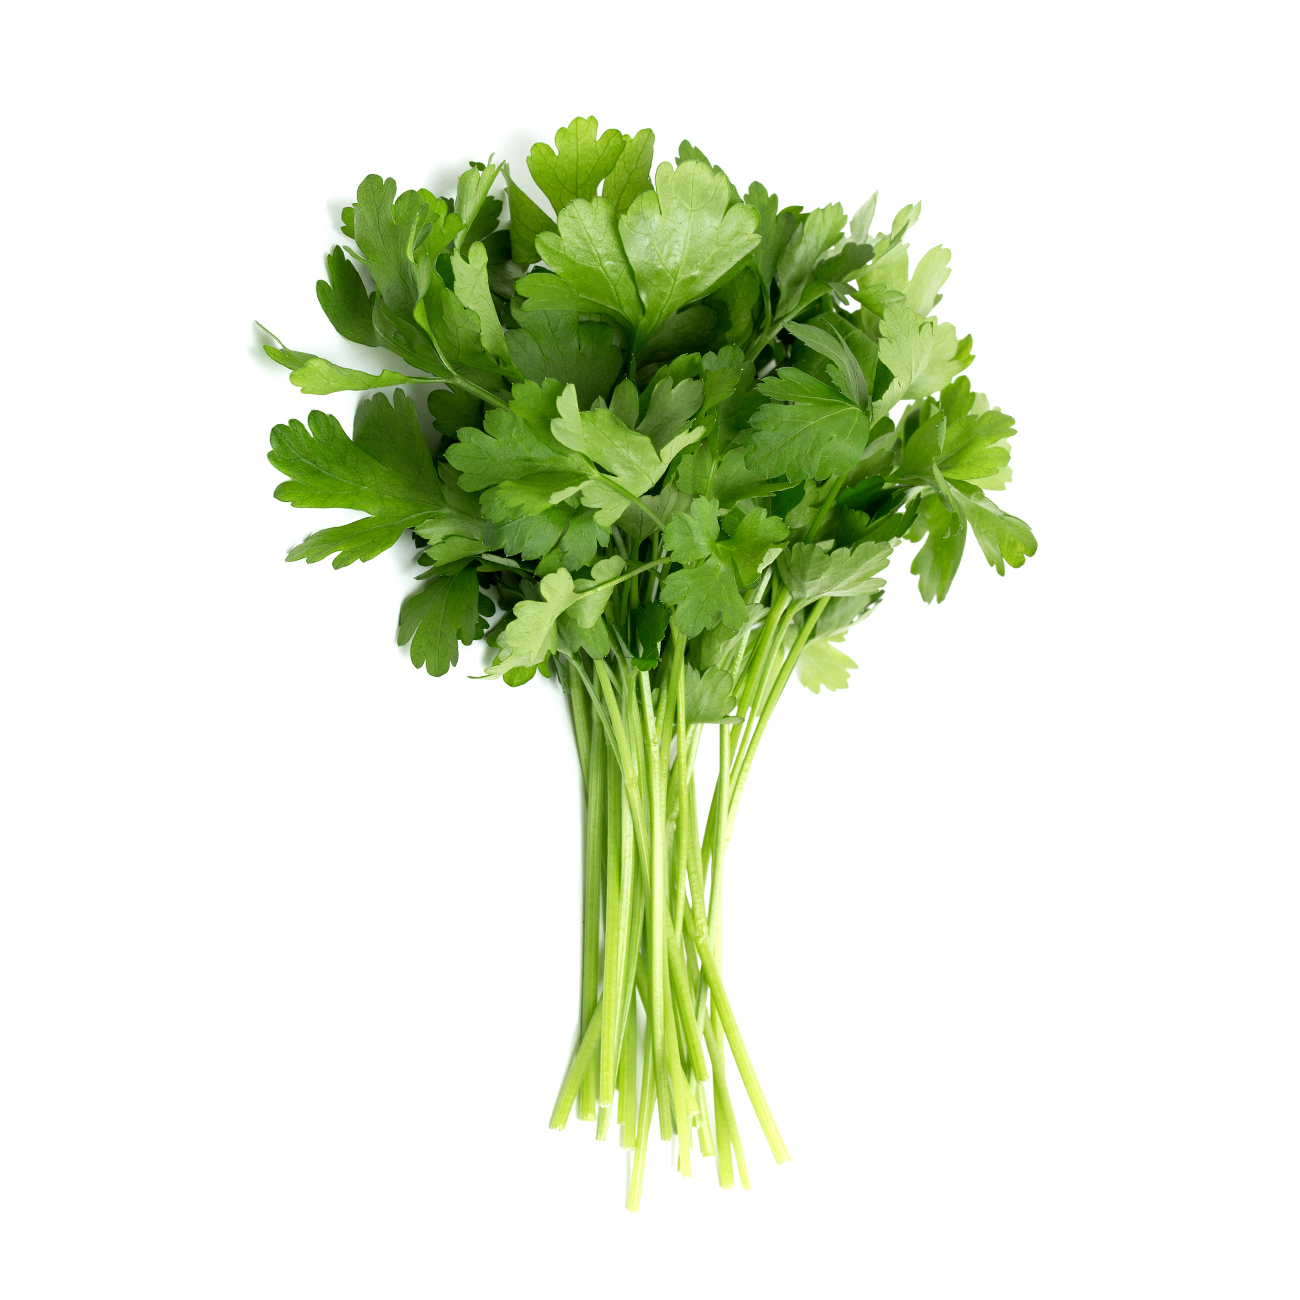 parsley,-continental.jpg